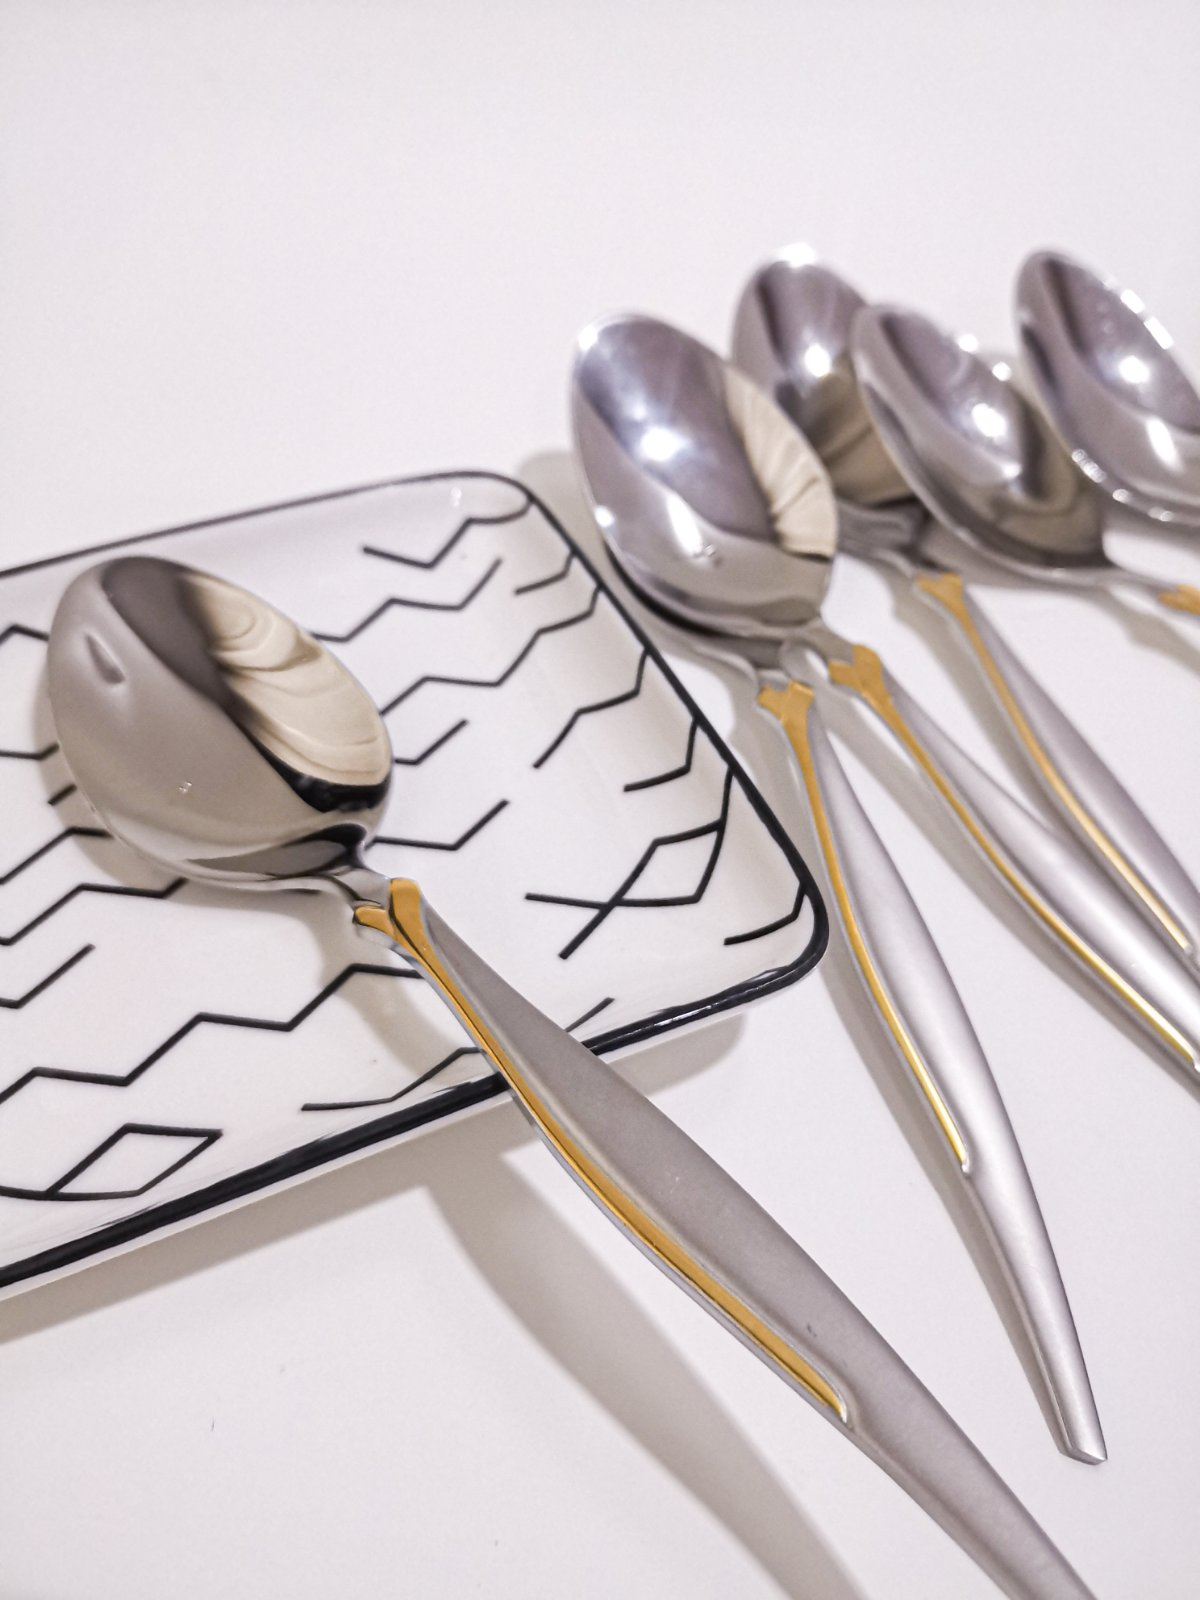 Gold Plated Stainless Steel Cutlery Set 12 Pcs Spoon Fork Set